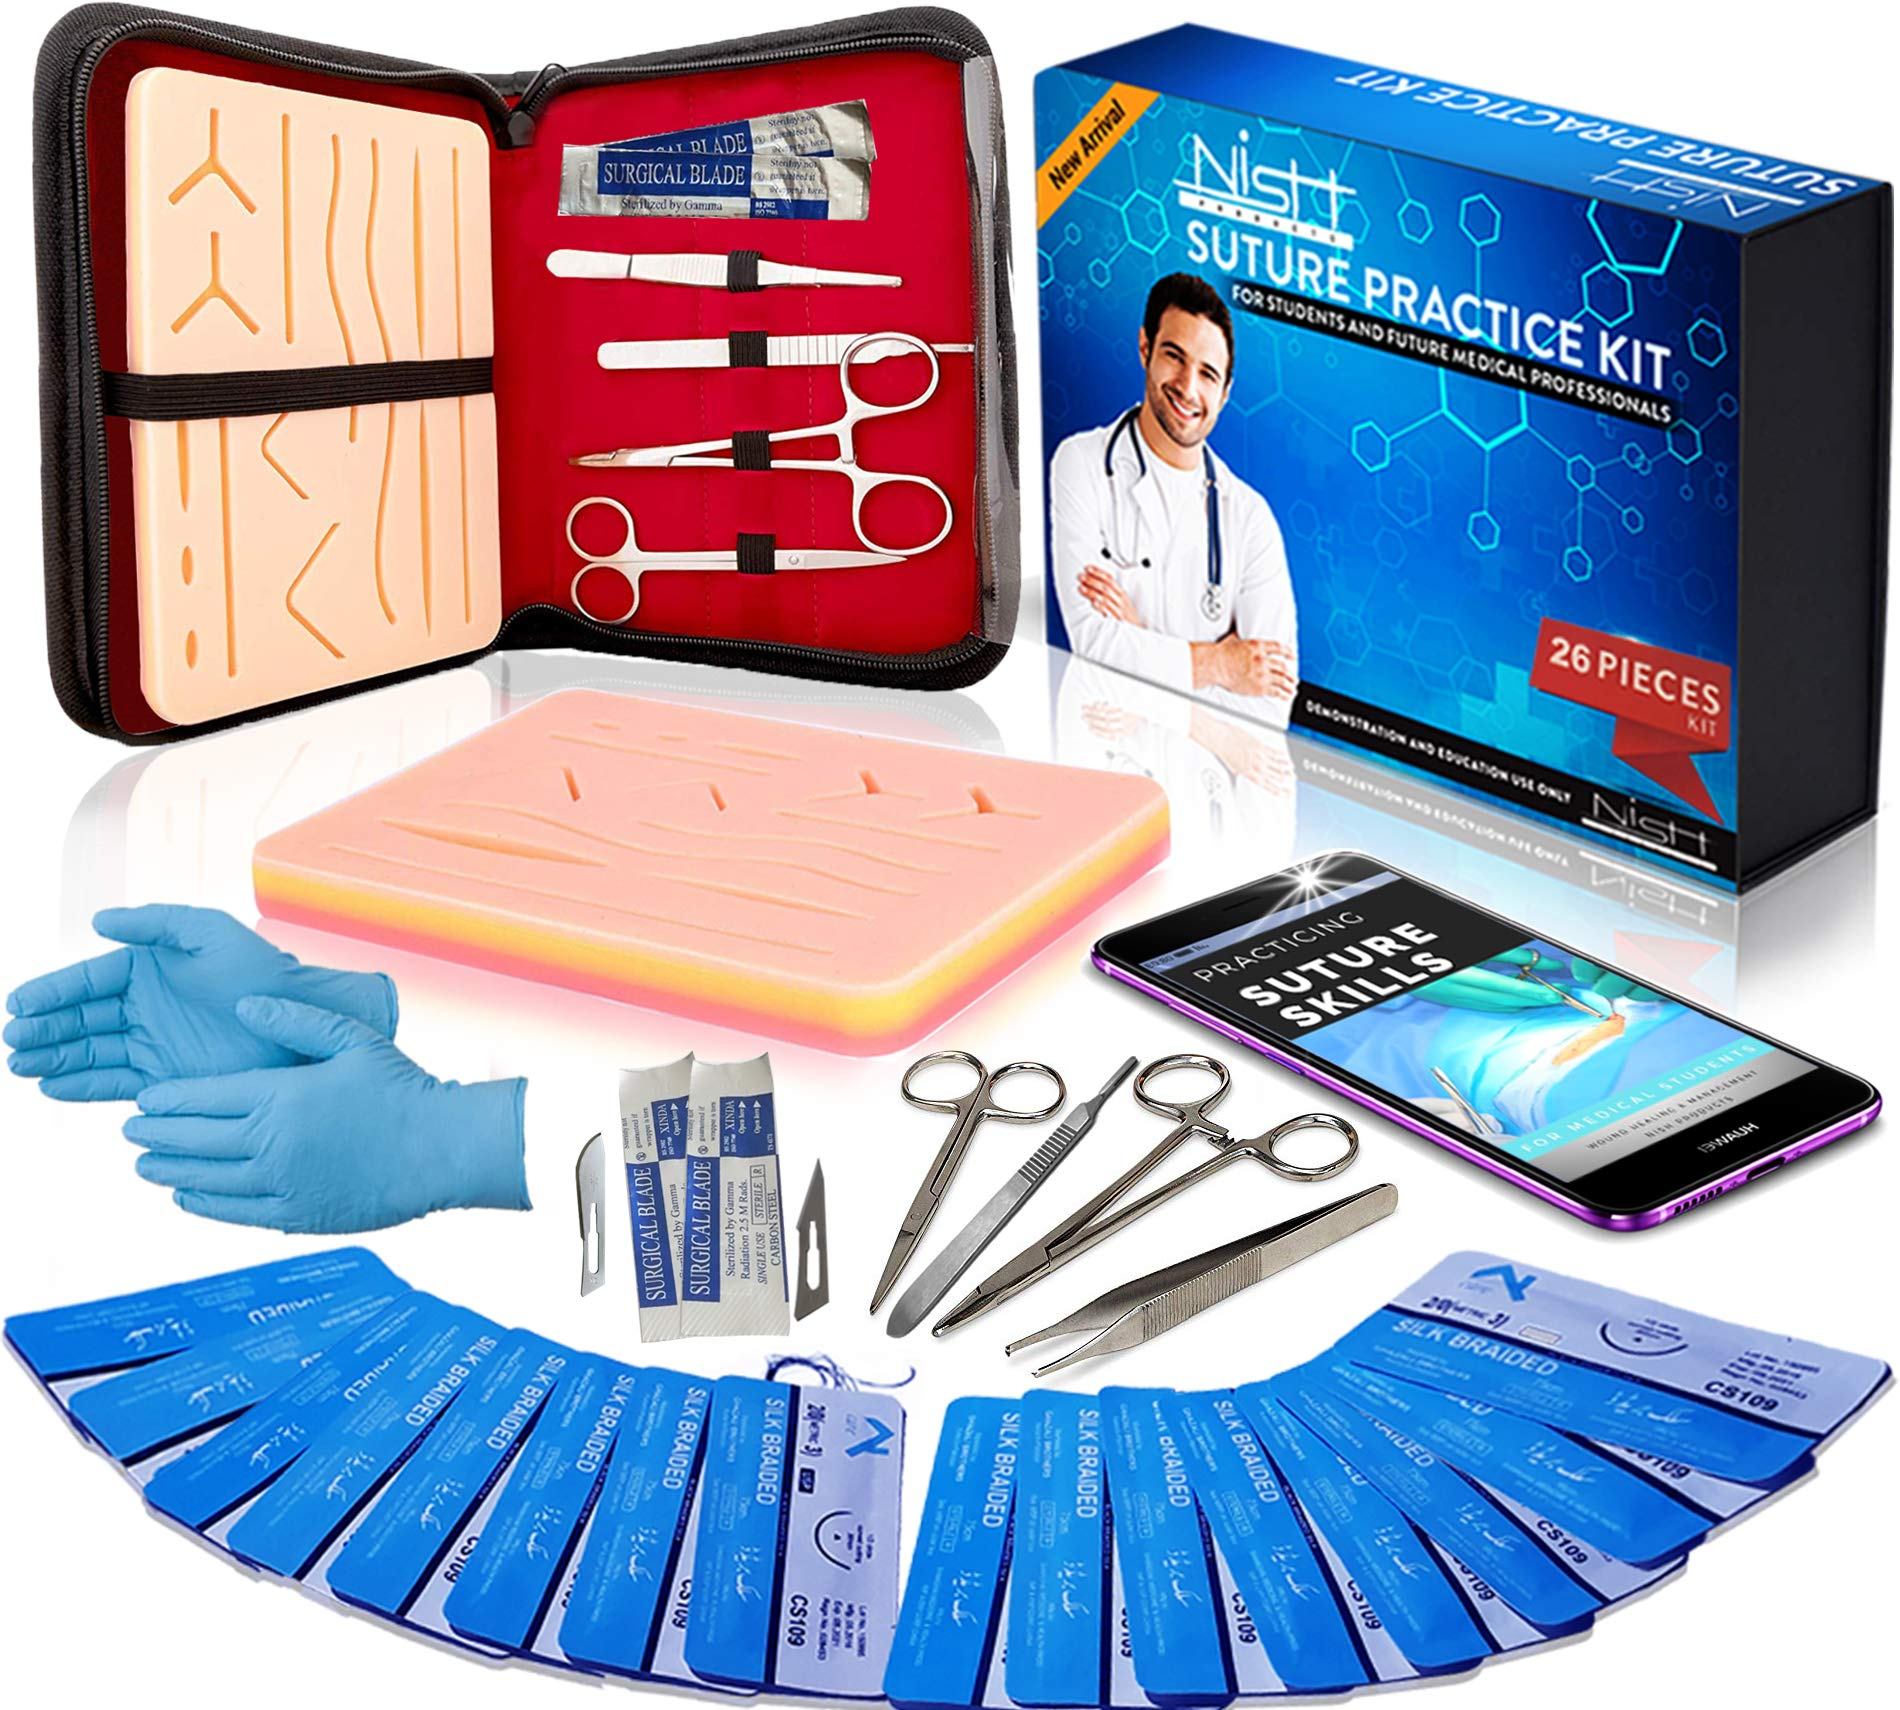 Suture Practice Kit for Medical Dental Vet Training Students, Including Mini Silicone Pad with Sutures and Suture Needles - Ebook for Training by Nish Products